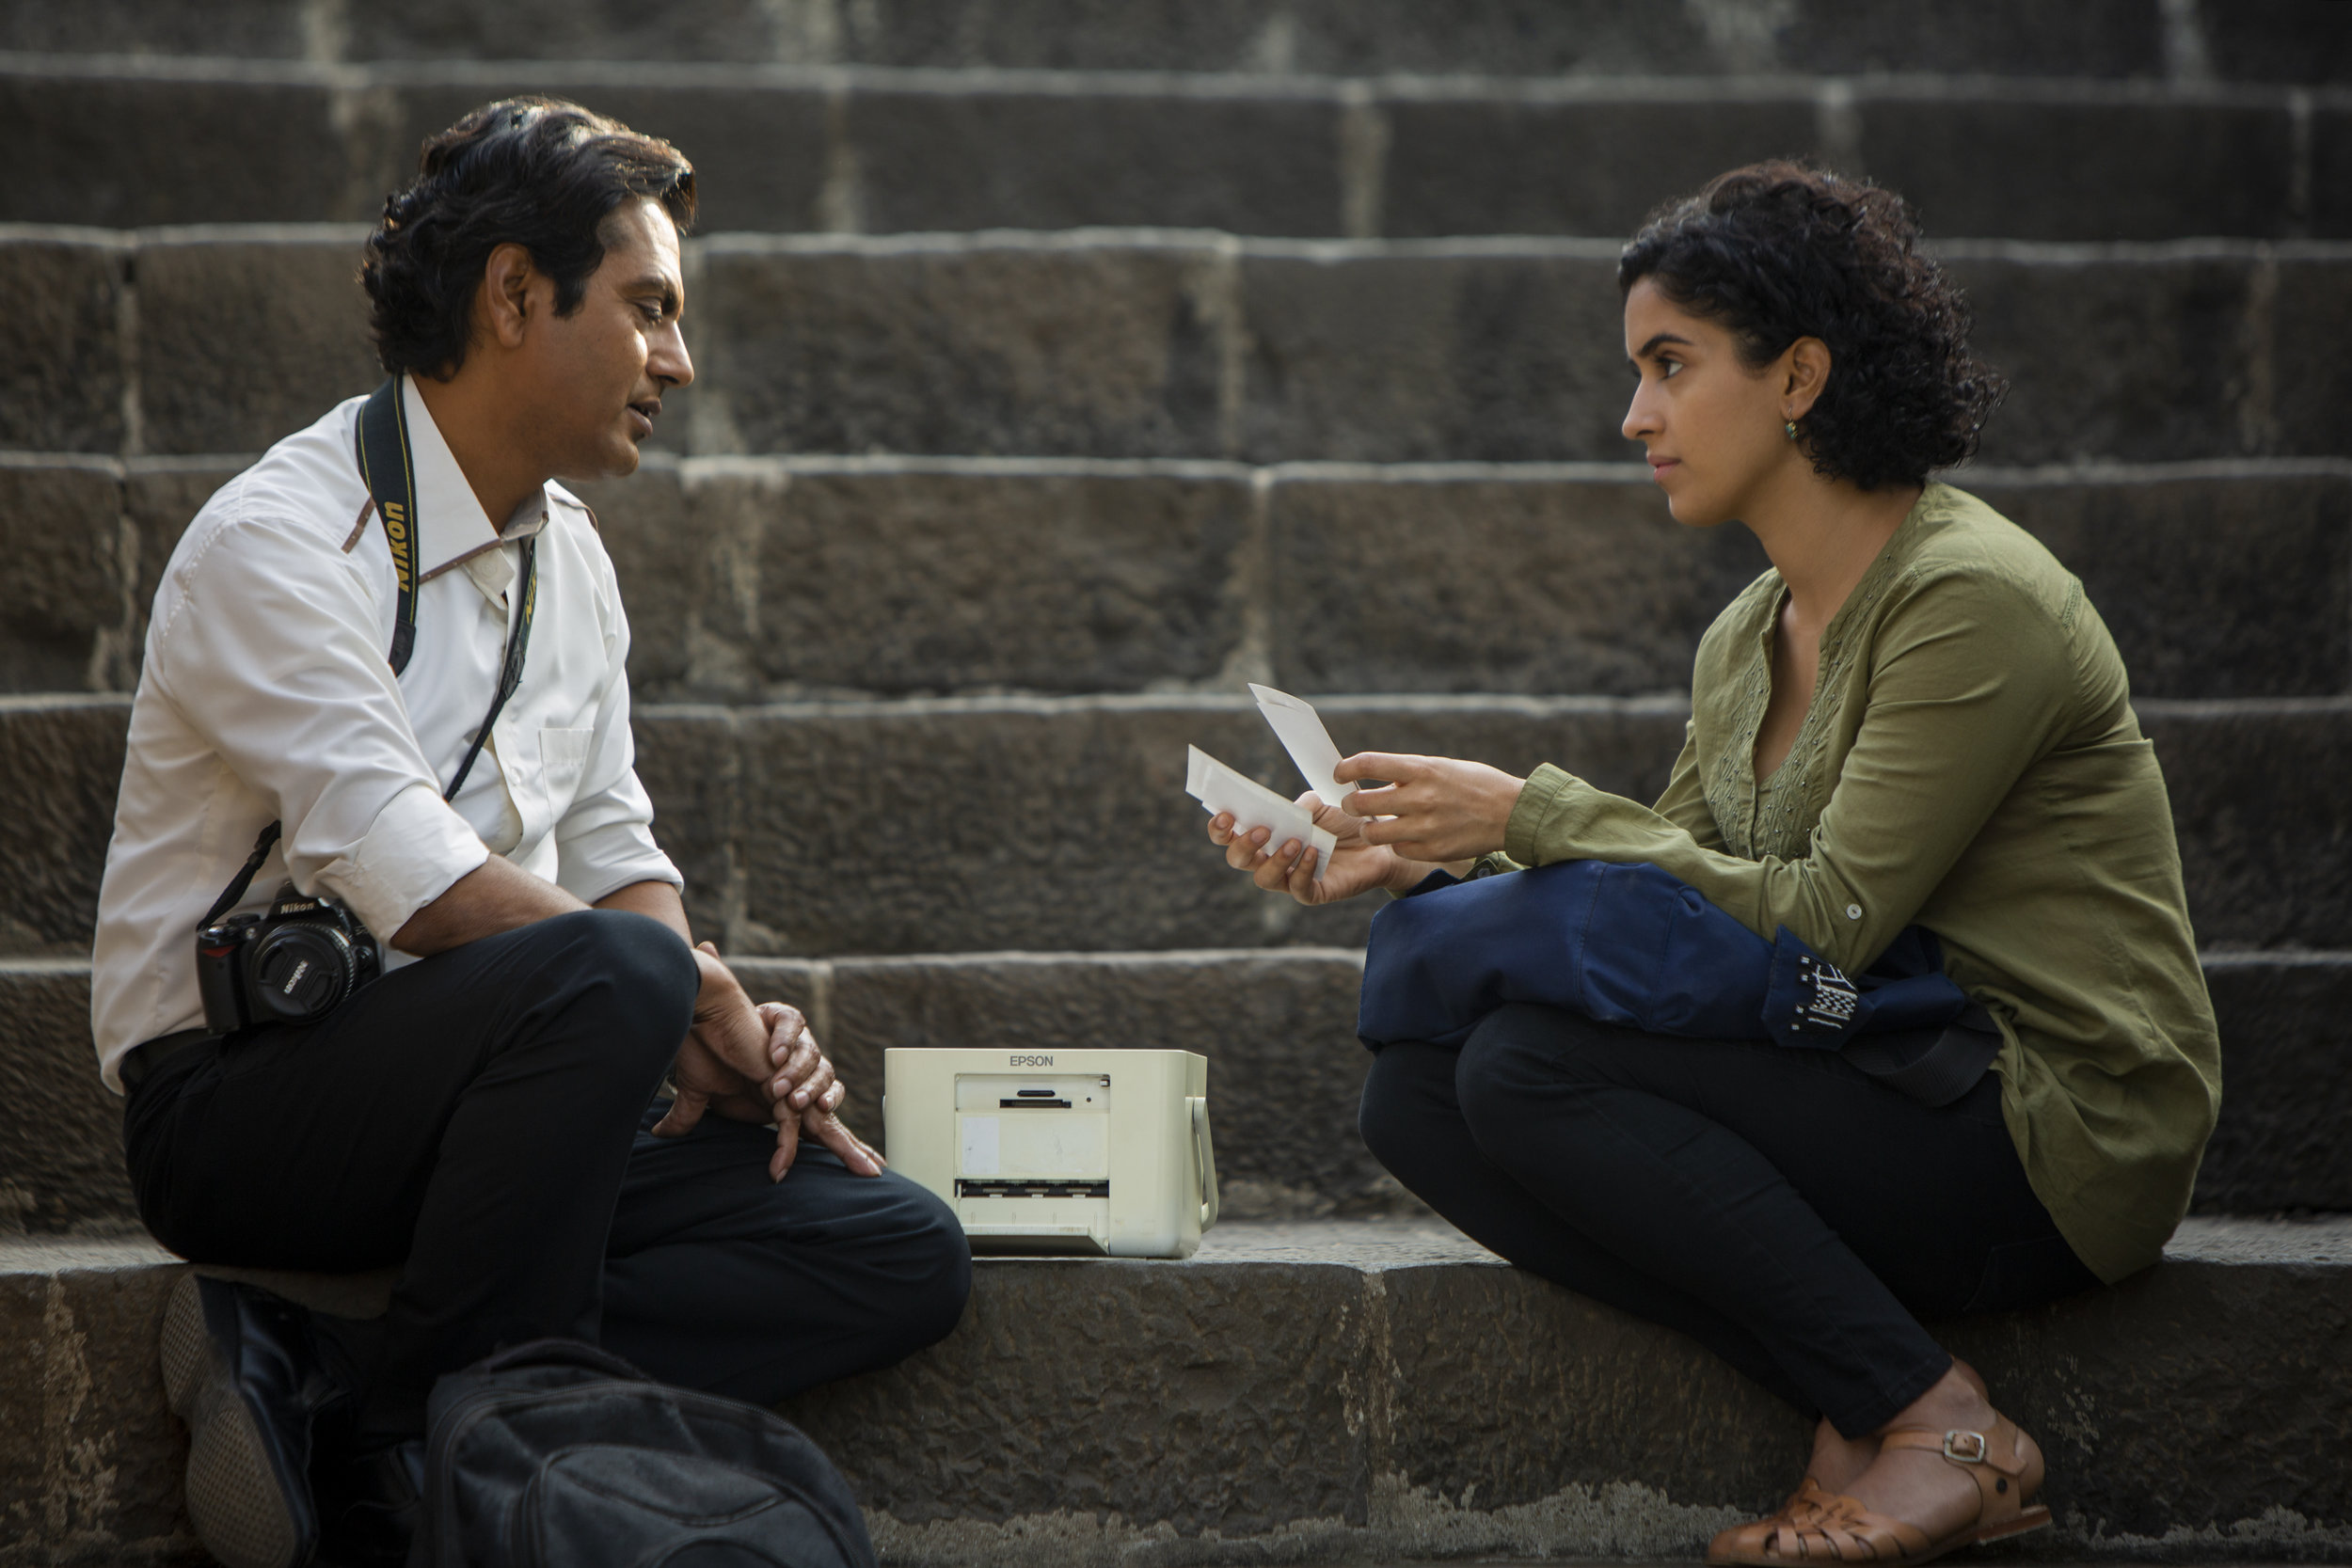 Sparks don't exactly fly between Rafi (Nawazuddin Siddiqui) and his pretend fiancé Miloni (Sanya Malhotra)